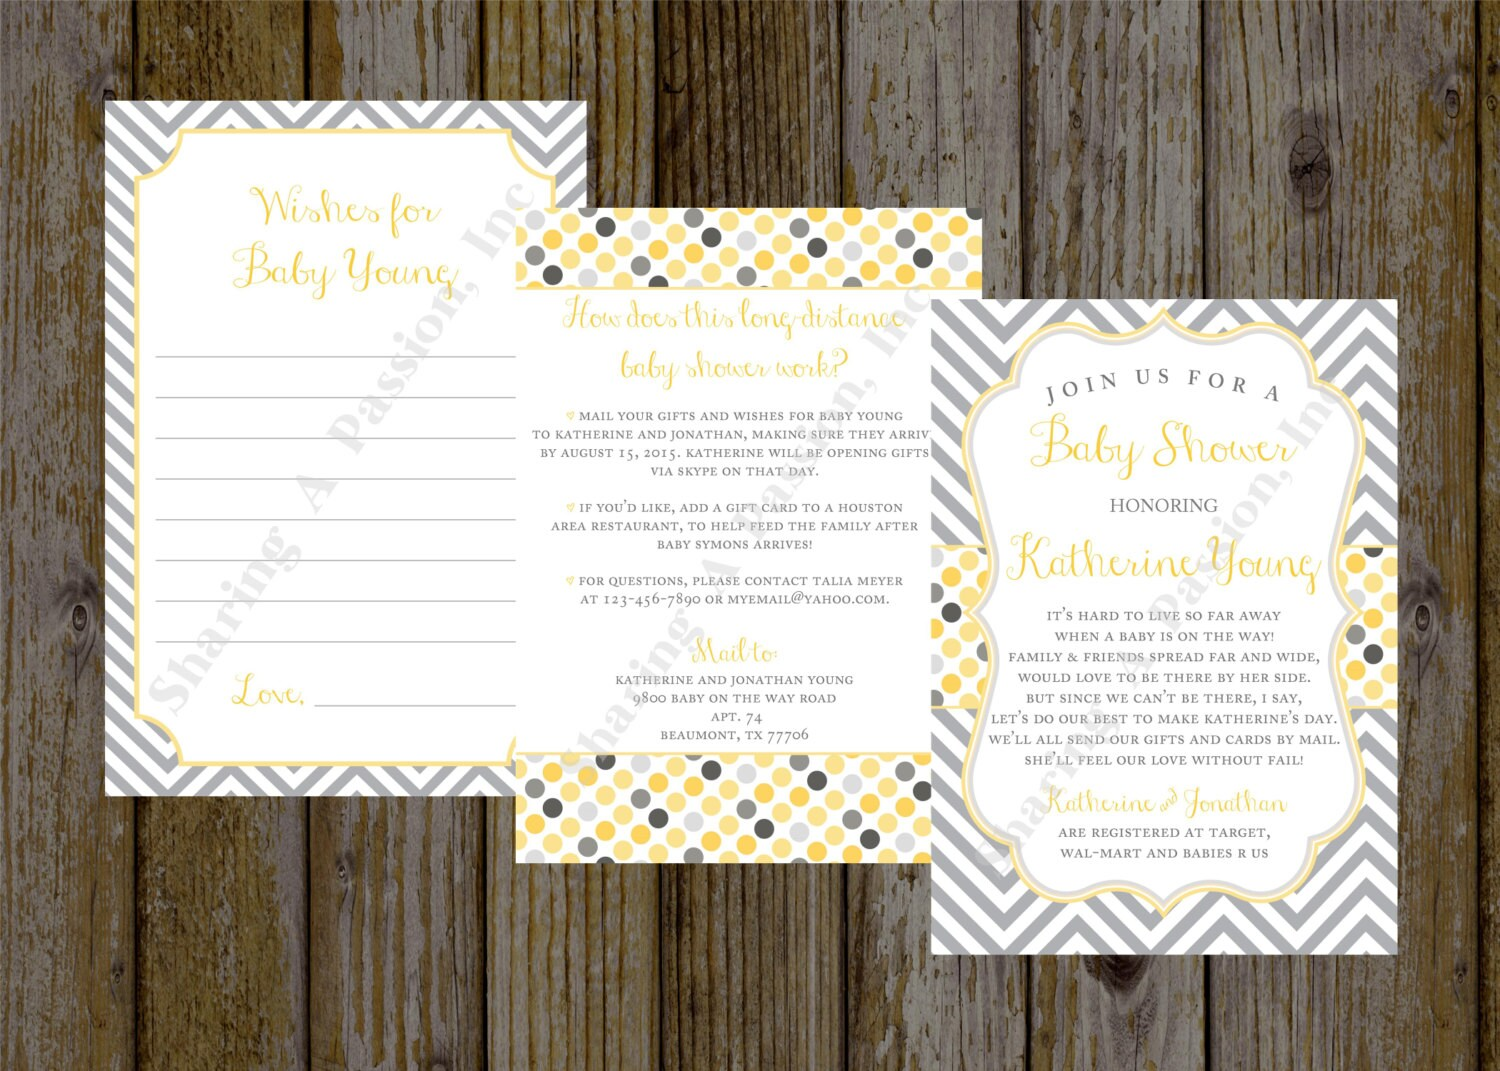 Long Distance Baby Shower Invitations is the best ideas you have to choose for invitation example